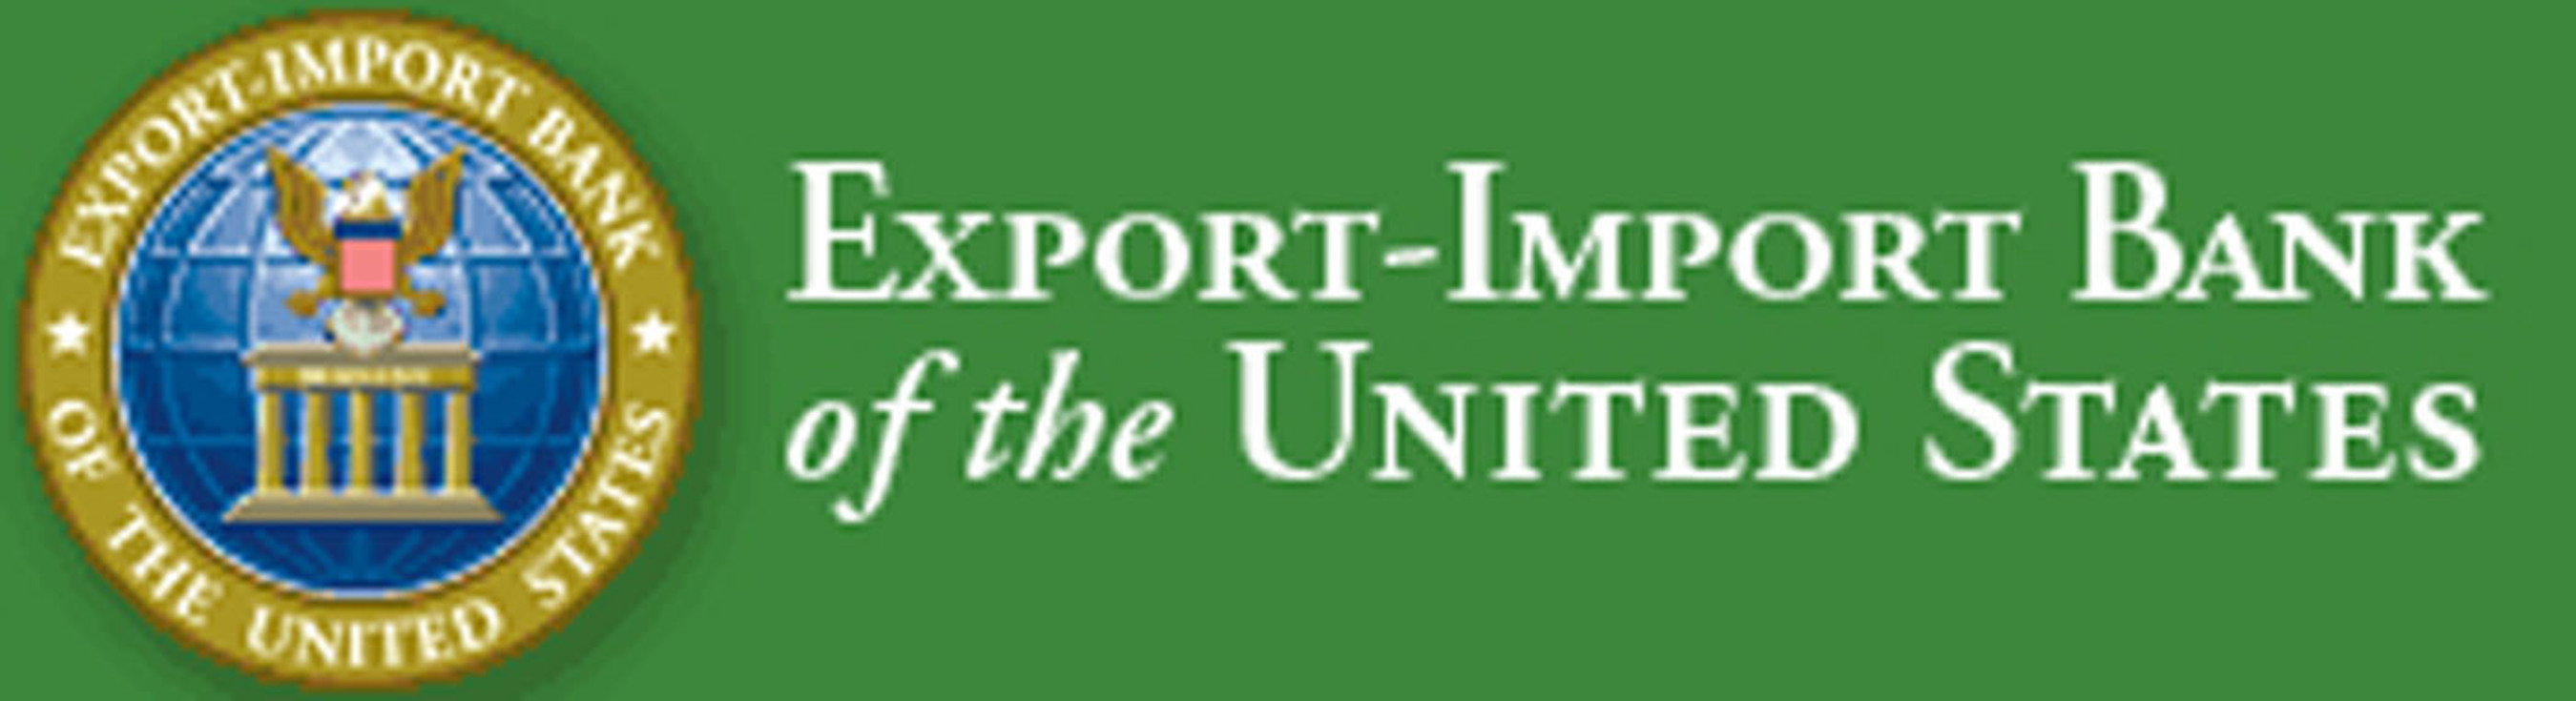 an analysis of the export import bank in the united states Export-import bank of the united states (ex-im bank) action: final rule summary: the ex-im bank, with the concurrence.